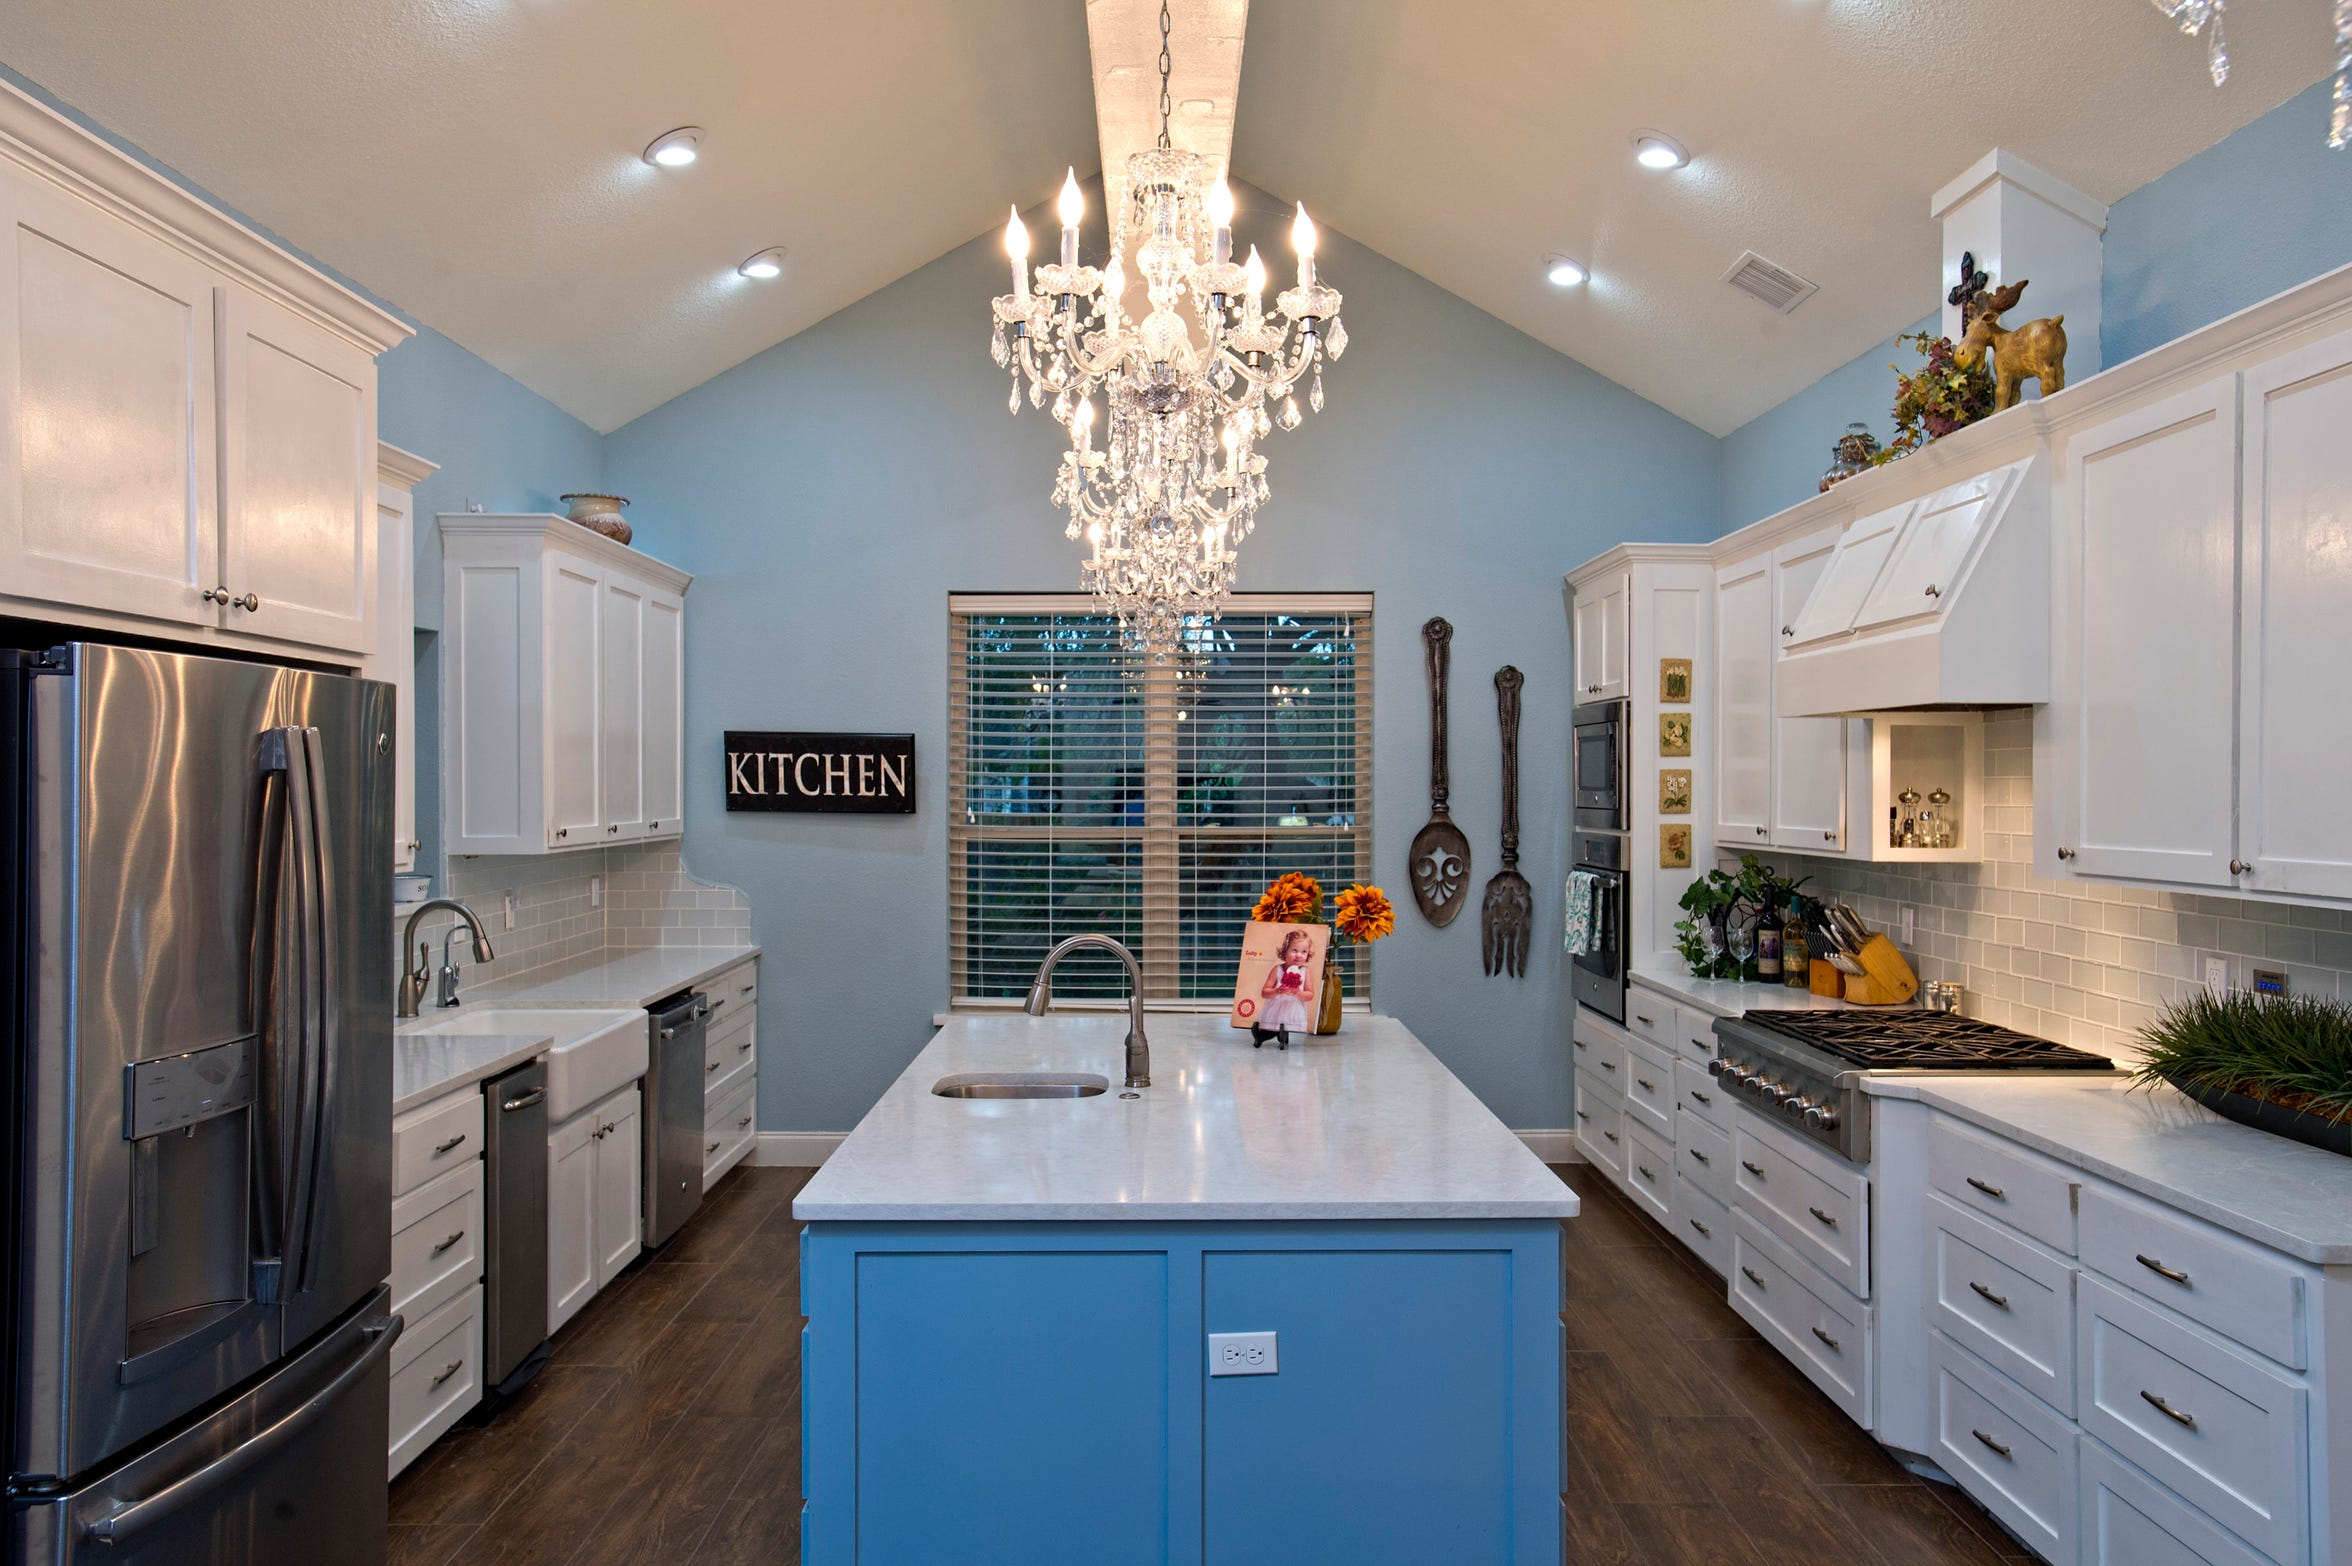 The most complimented area of the home is the kitchen which is finished in pleasant colors with unique lighting from crystal chandeliers.   The area features a cathedral ceiling,  great storage, an island with a 2nd sink plus a commercial style gas cook top.